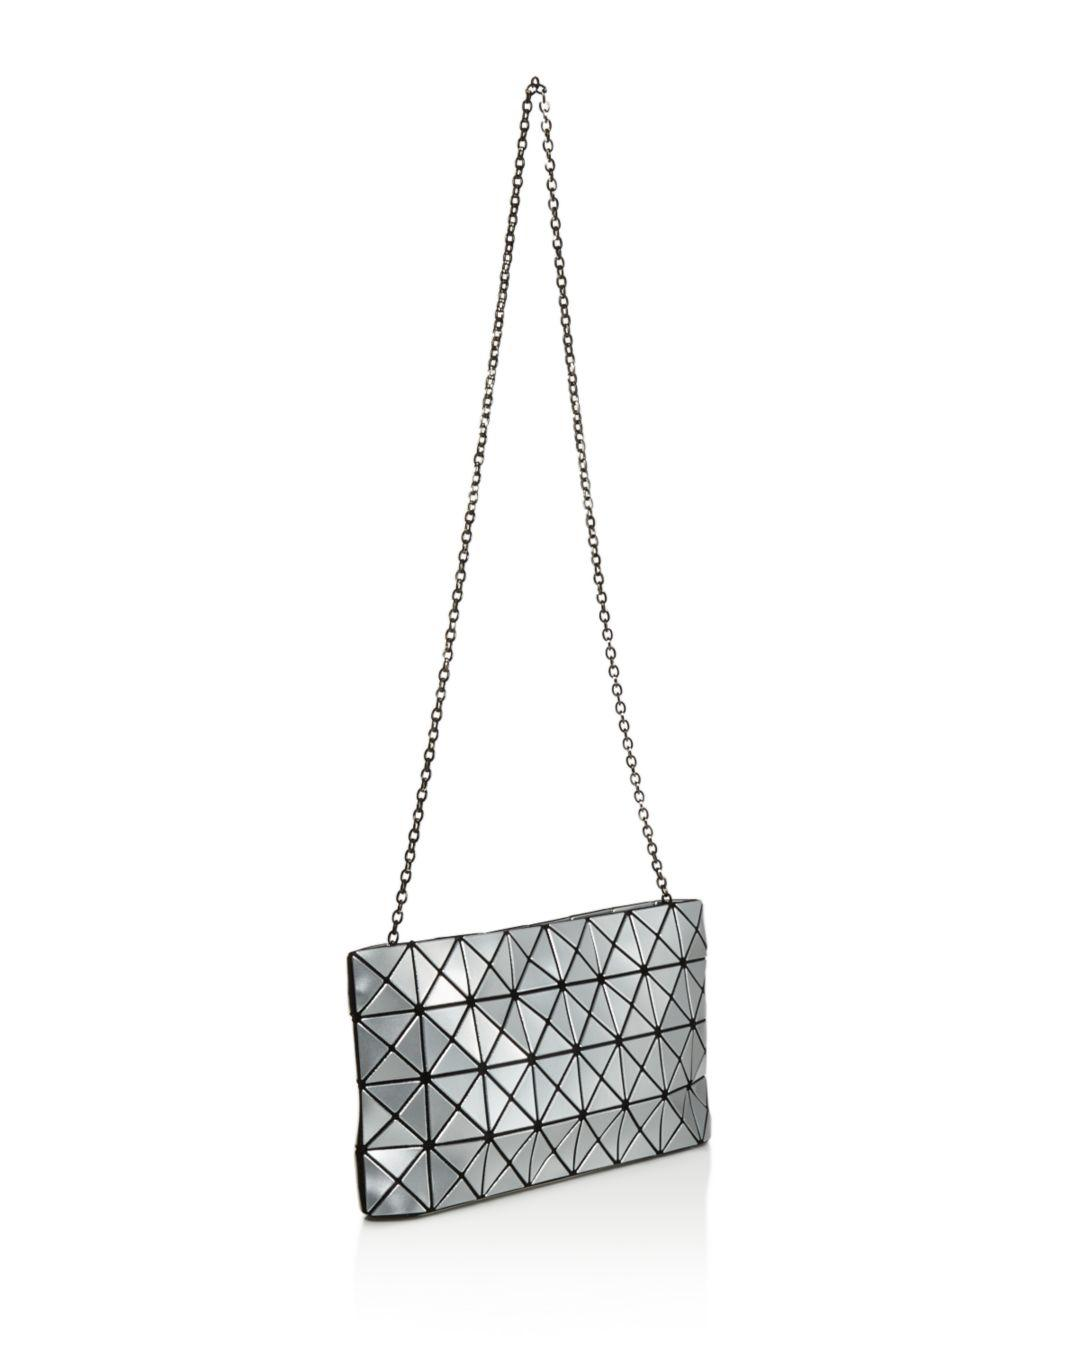 91fc08dc86 Gallery. Previously sold at  Bloomingdale s · Women s Metallic Clutch Bags  Women s Bao Bao Issey Miyake Prism